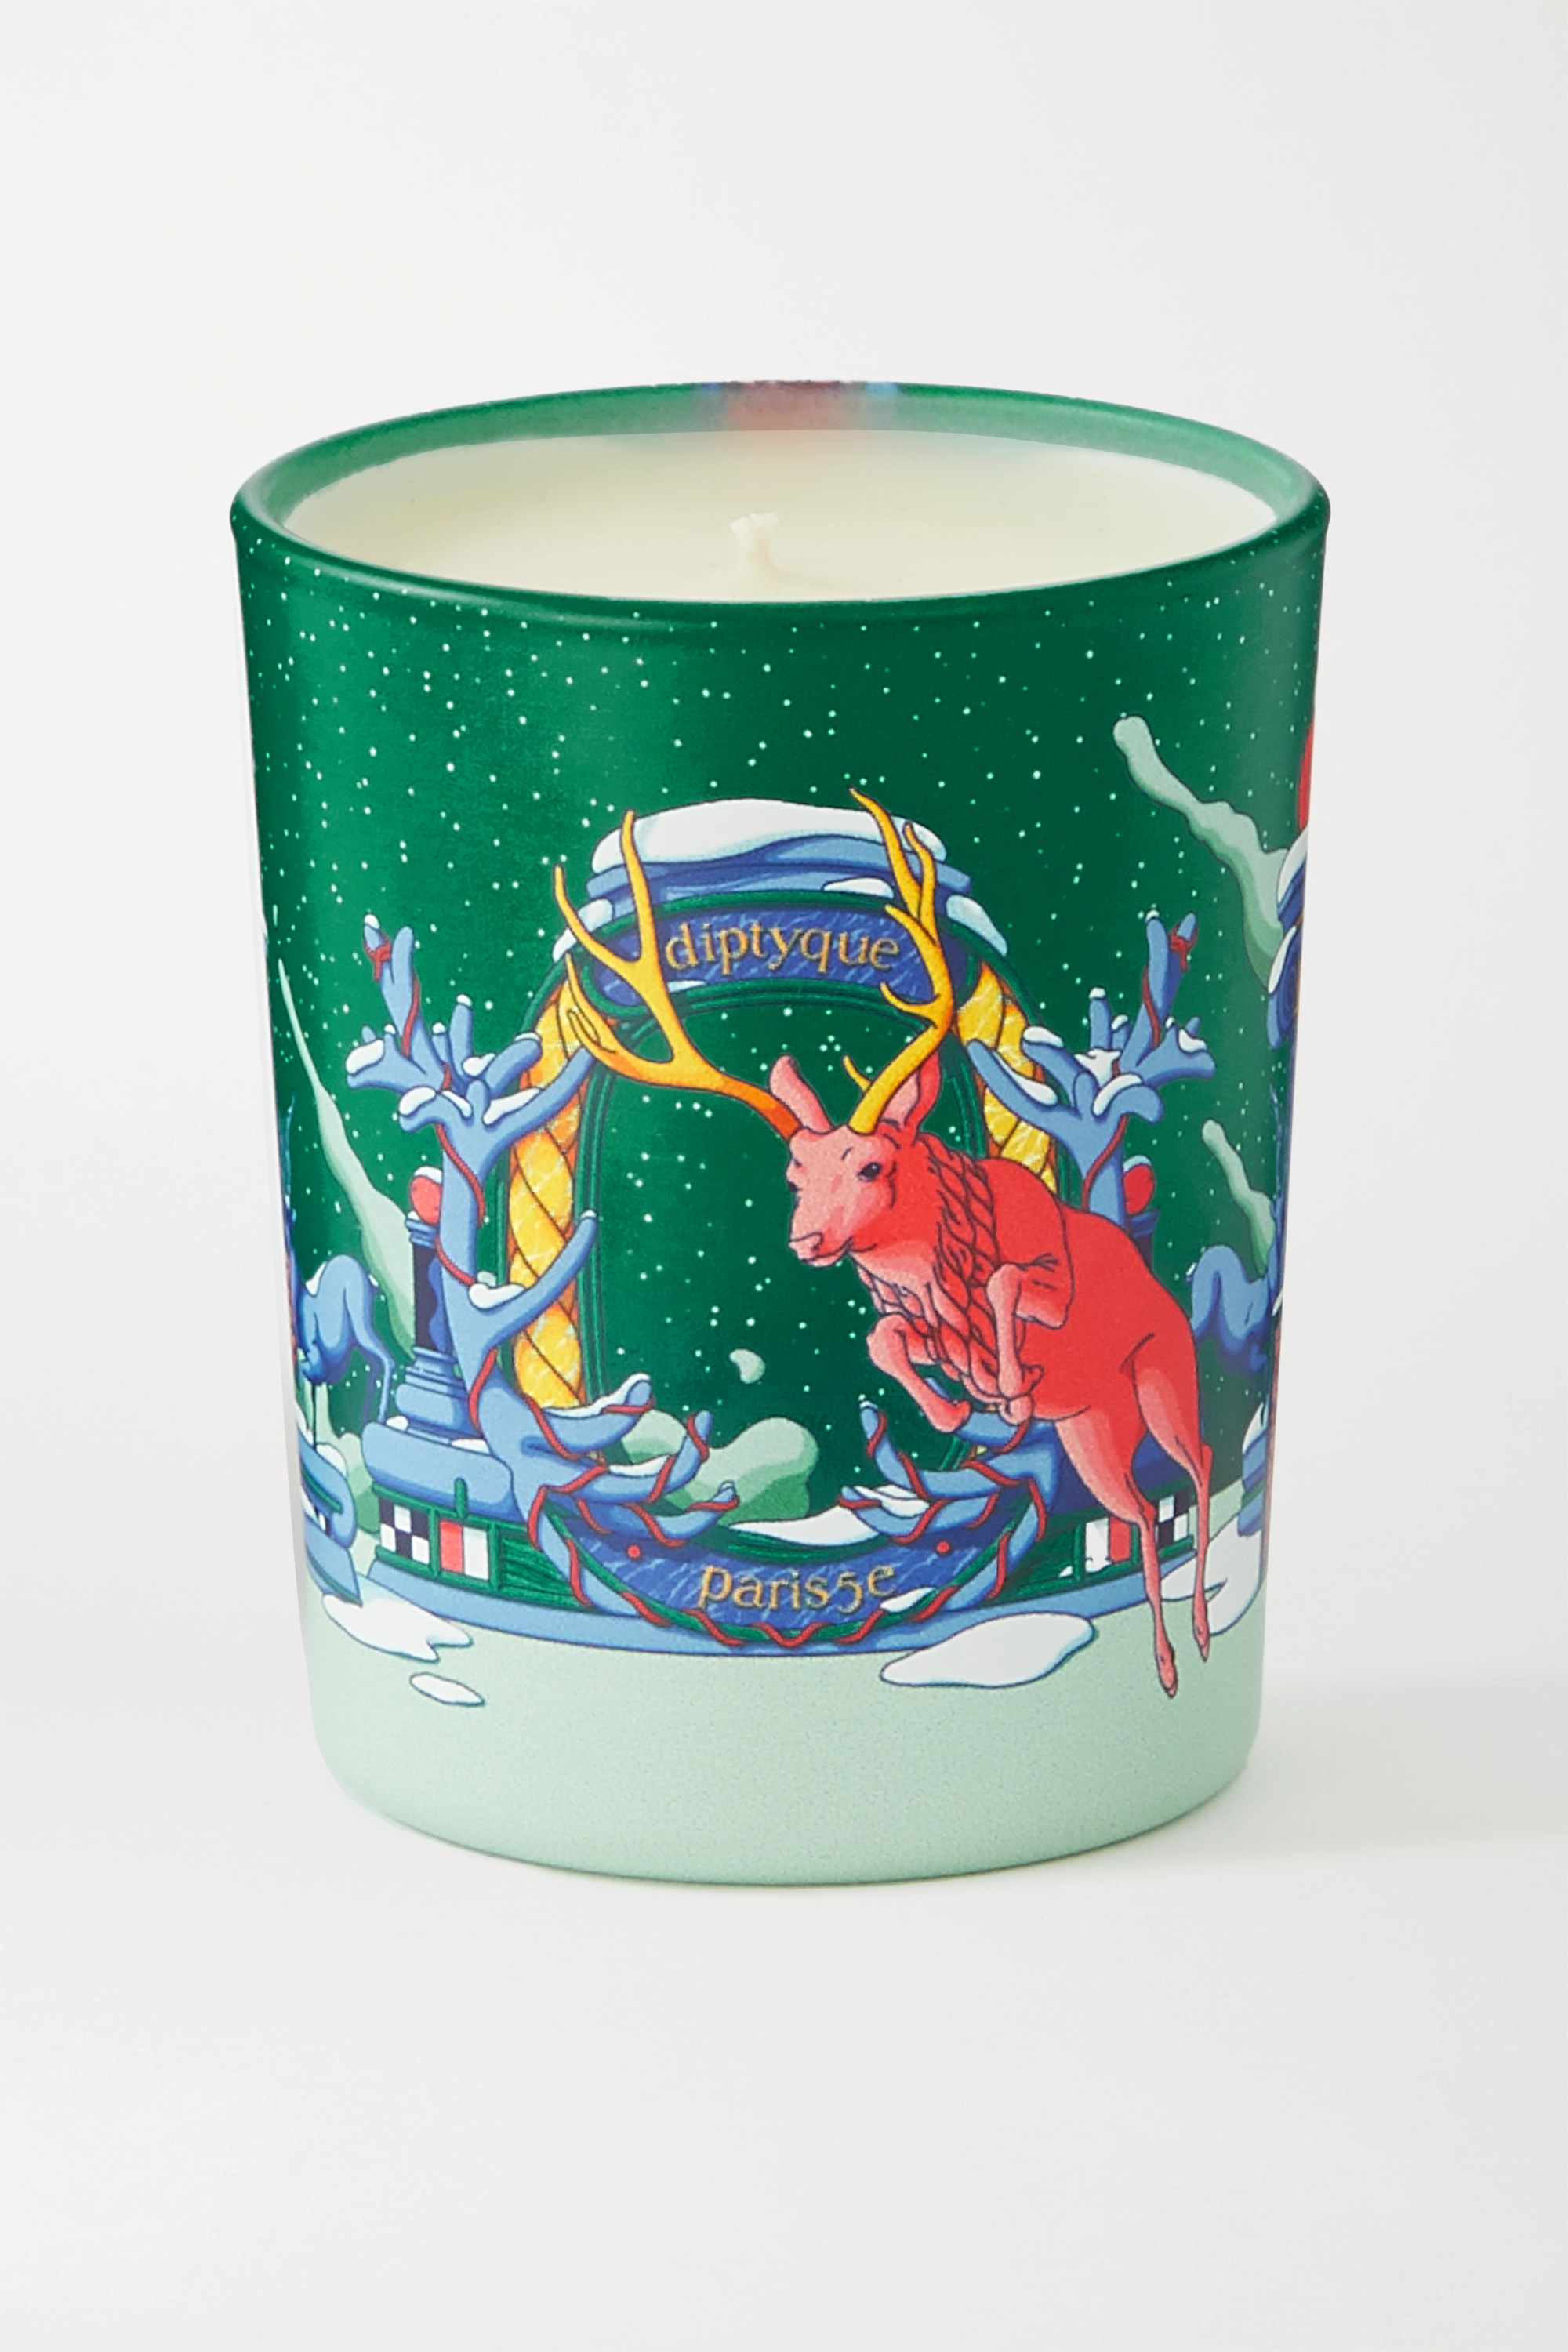 Diptyque Sapin de Nuit scented candle, 70g